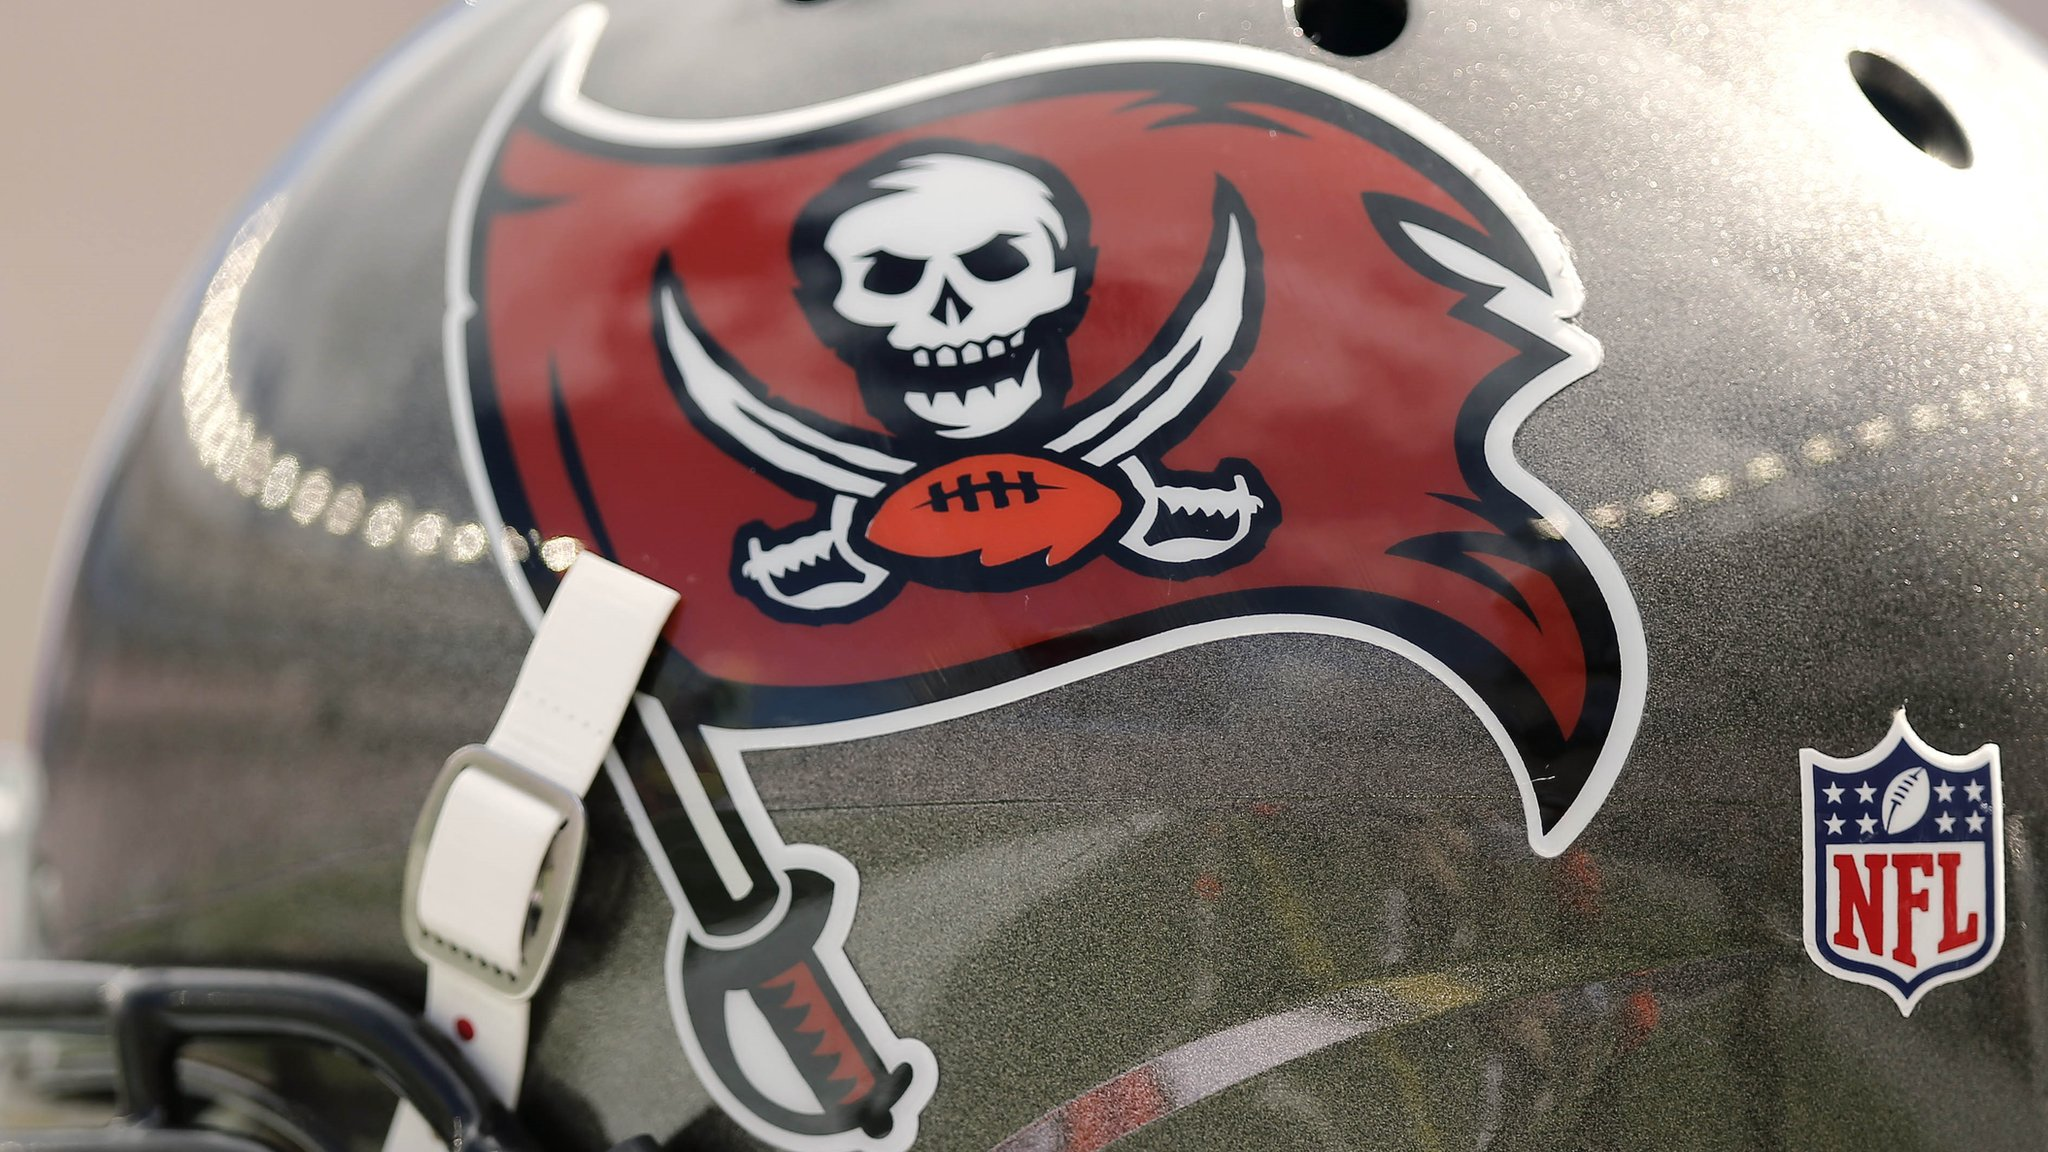 Tampa Bay Buccaneers become first NFL franchise to appoint two female coaches